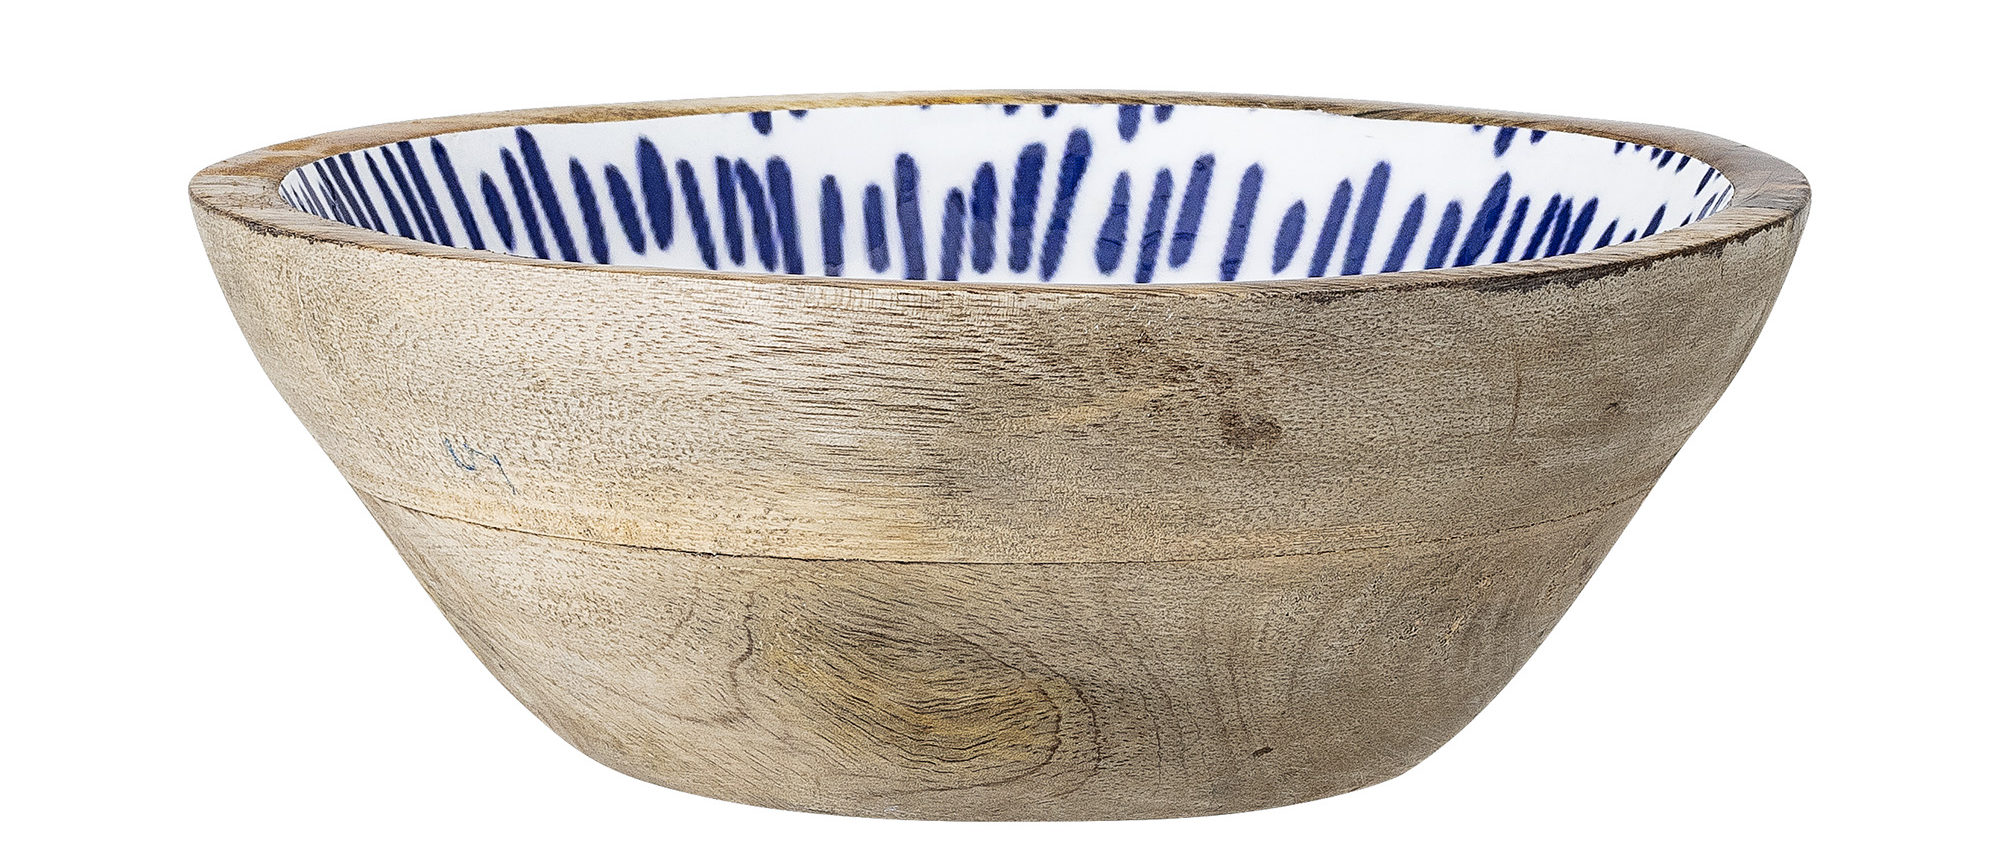 Enamel Mango Wood Bowl